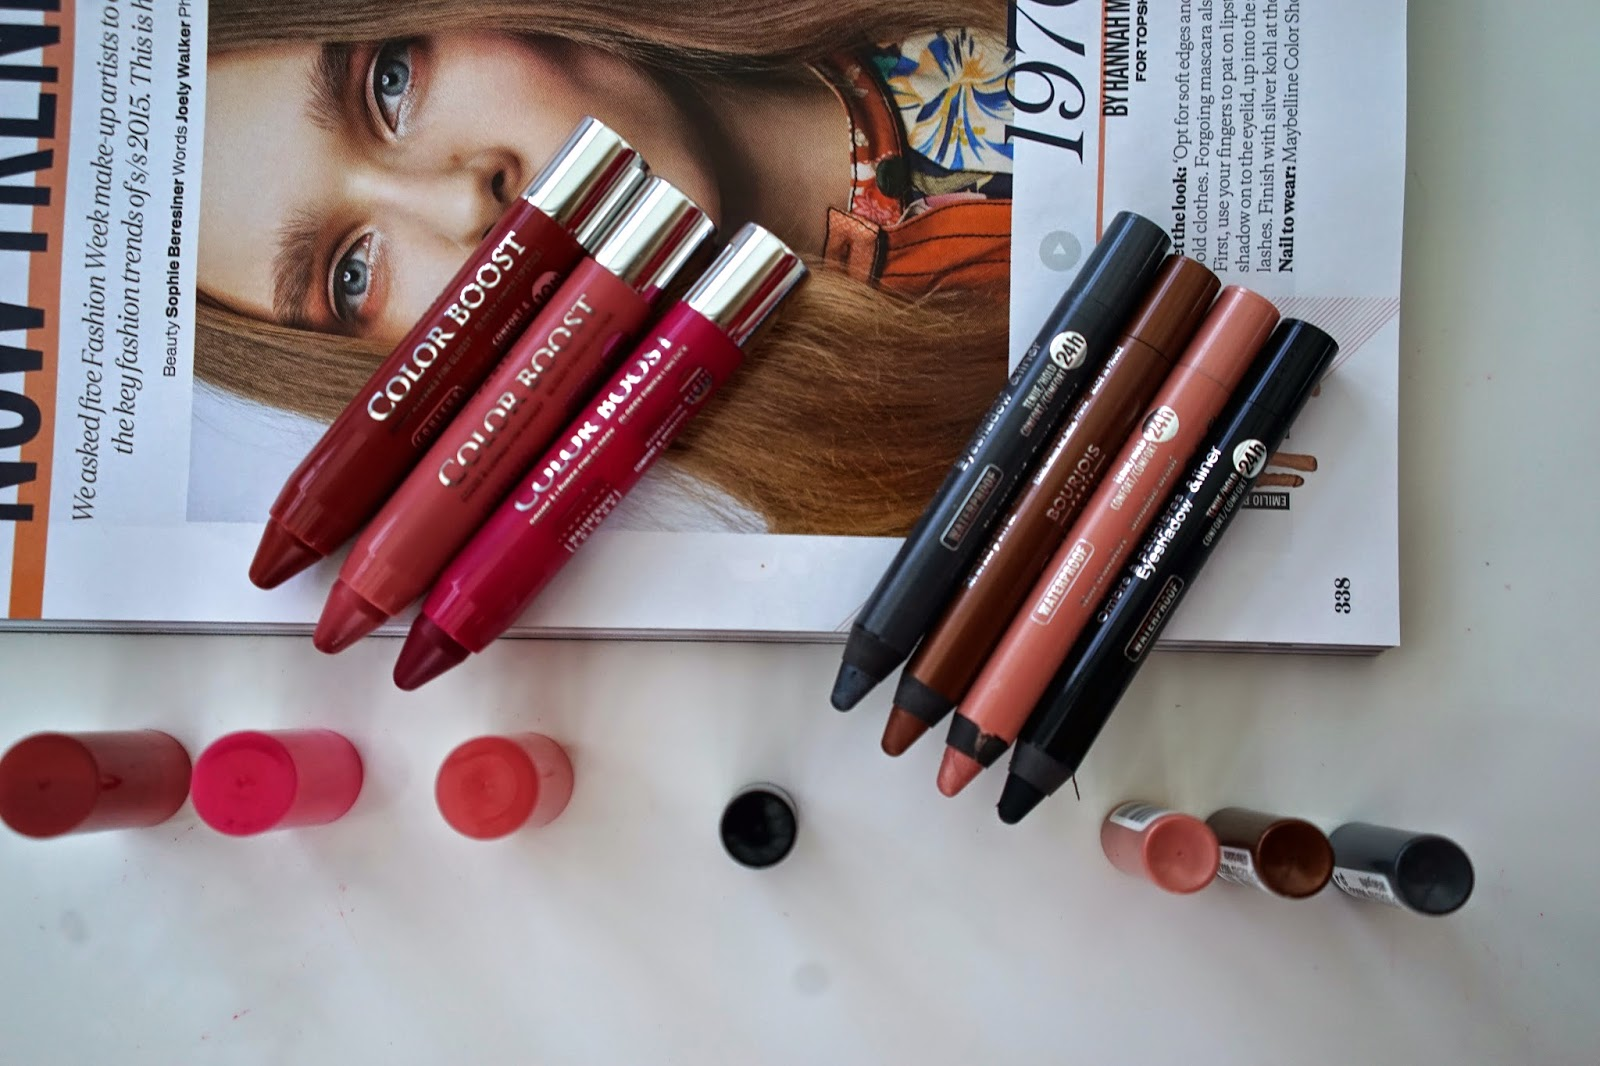 Bourjois color boost collection